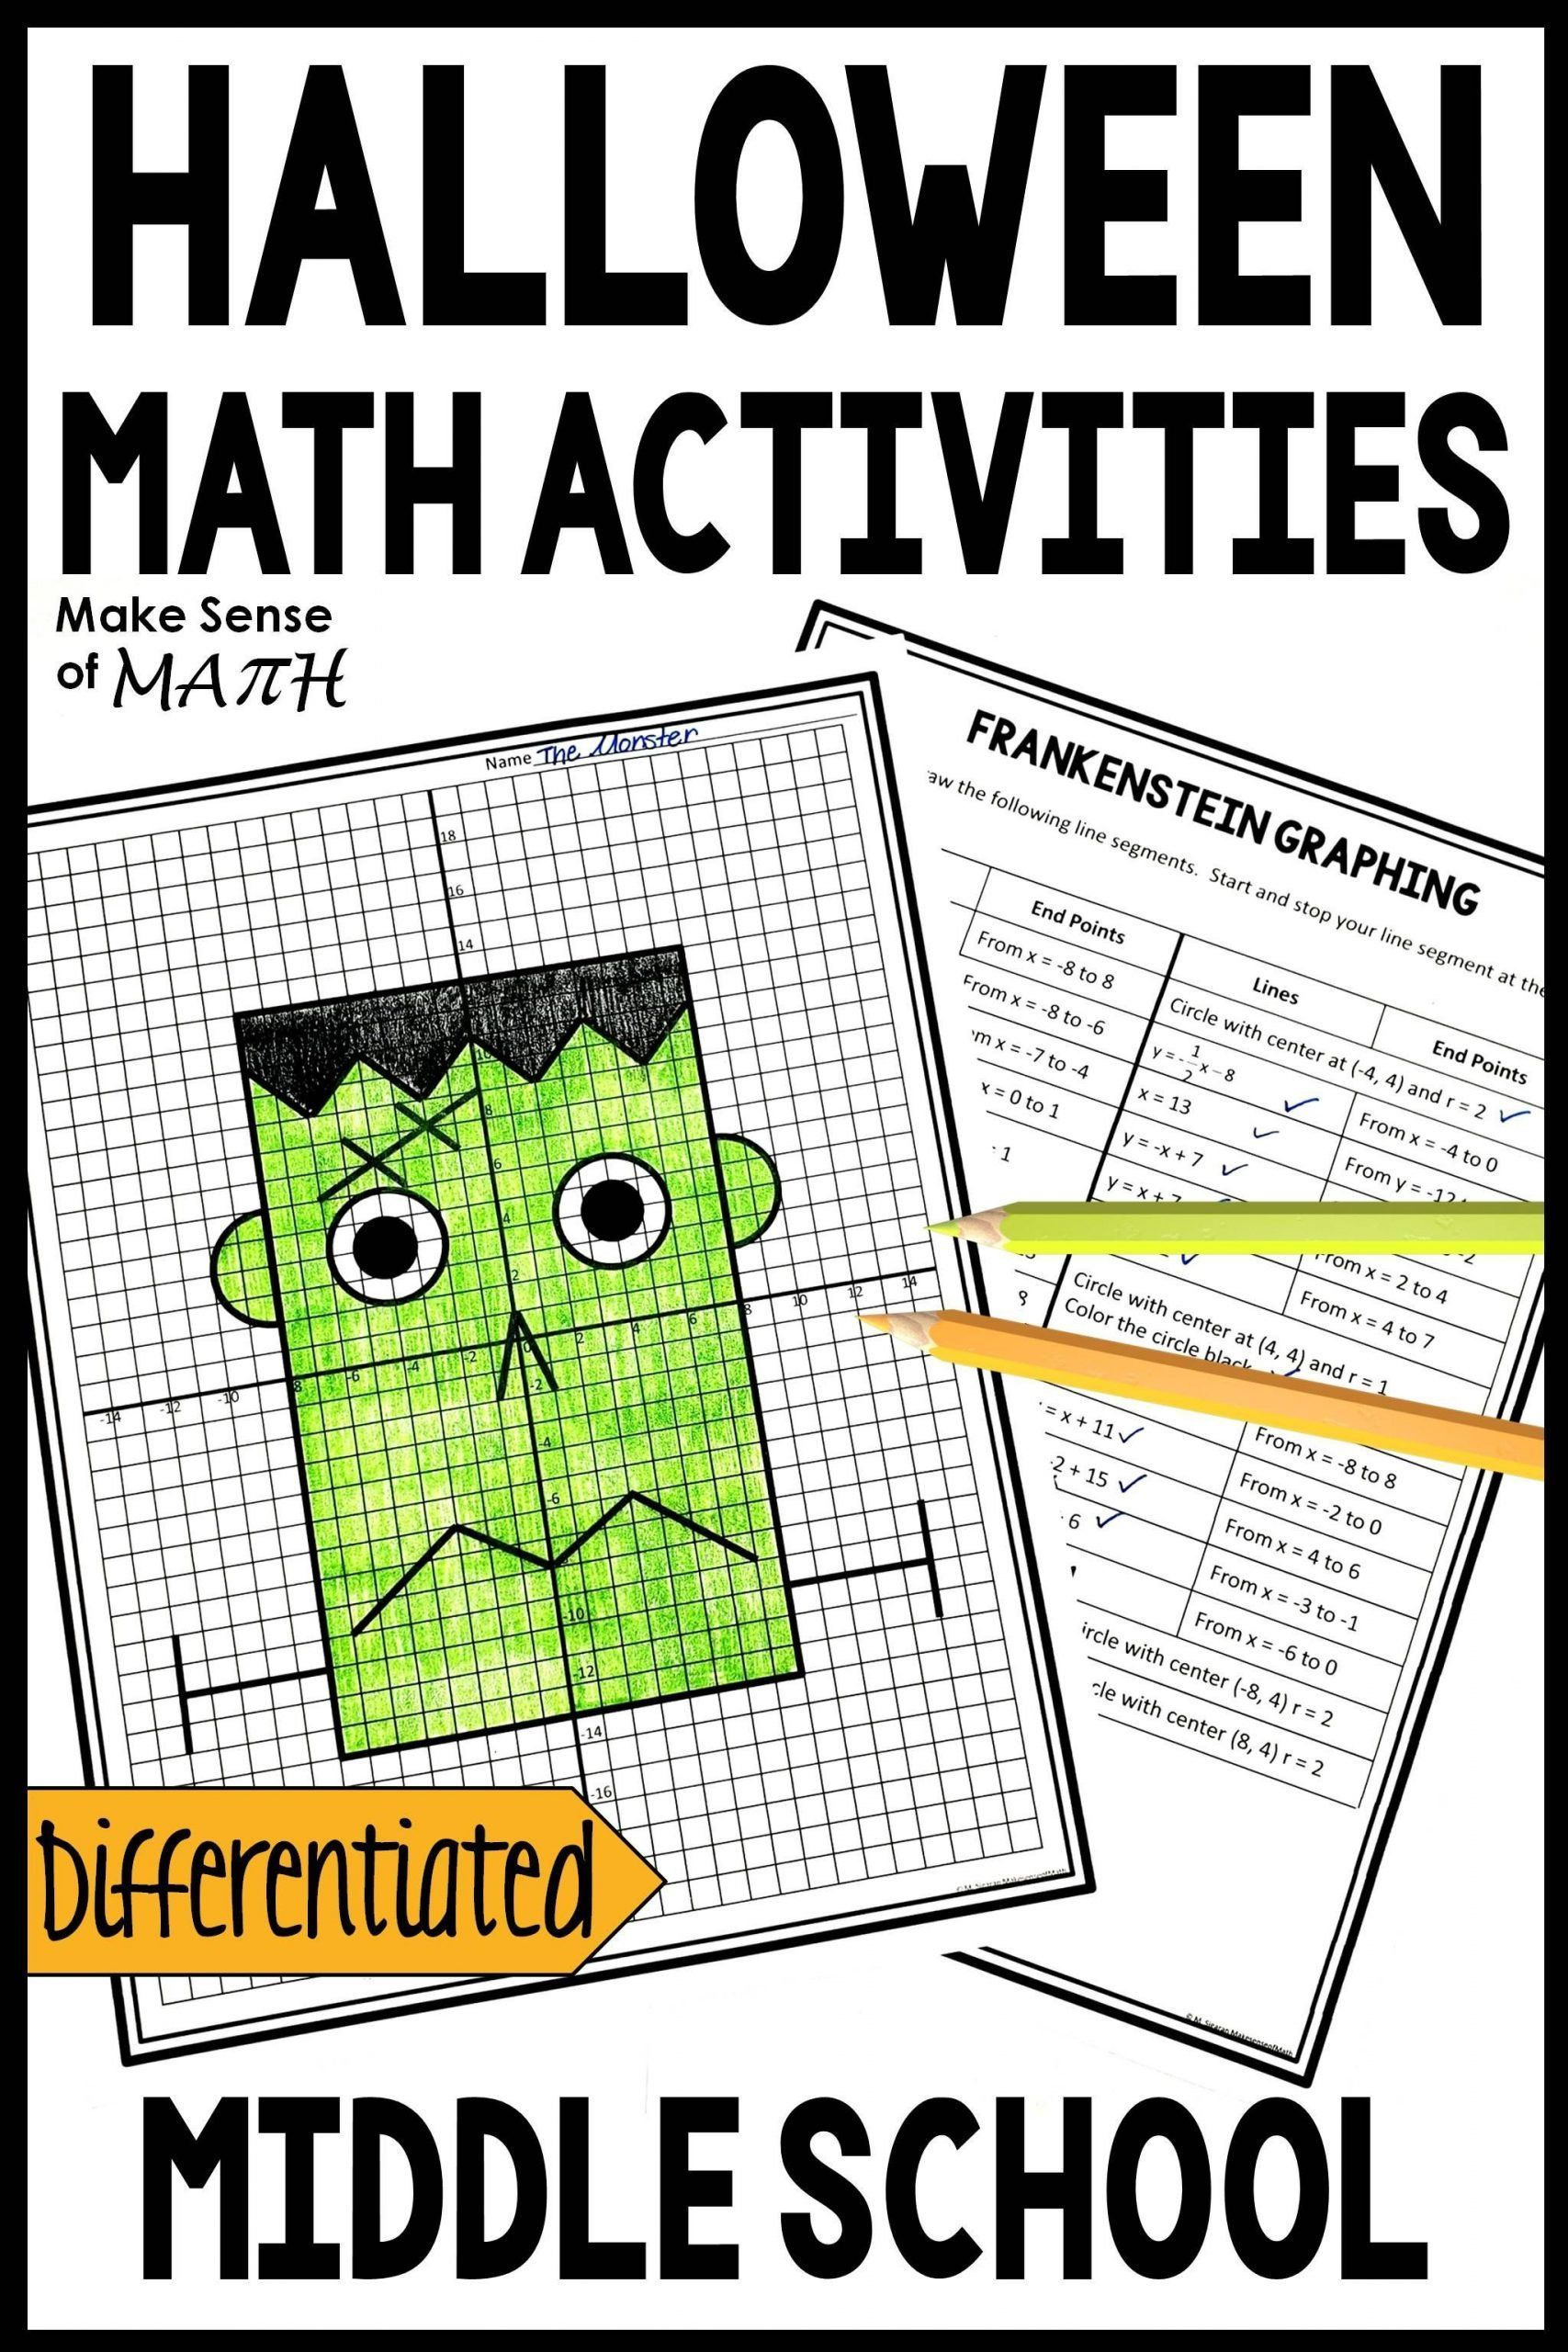 Fun Math Worksheets For 3rd Worksheet Grade Telling Time Coloring Free Middle School Download Pictures Puzzle Math Worksheets Maths Puzzles Fun Math Worksheets